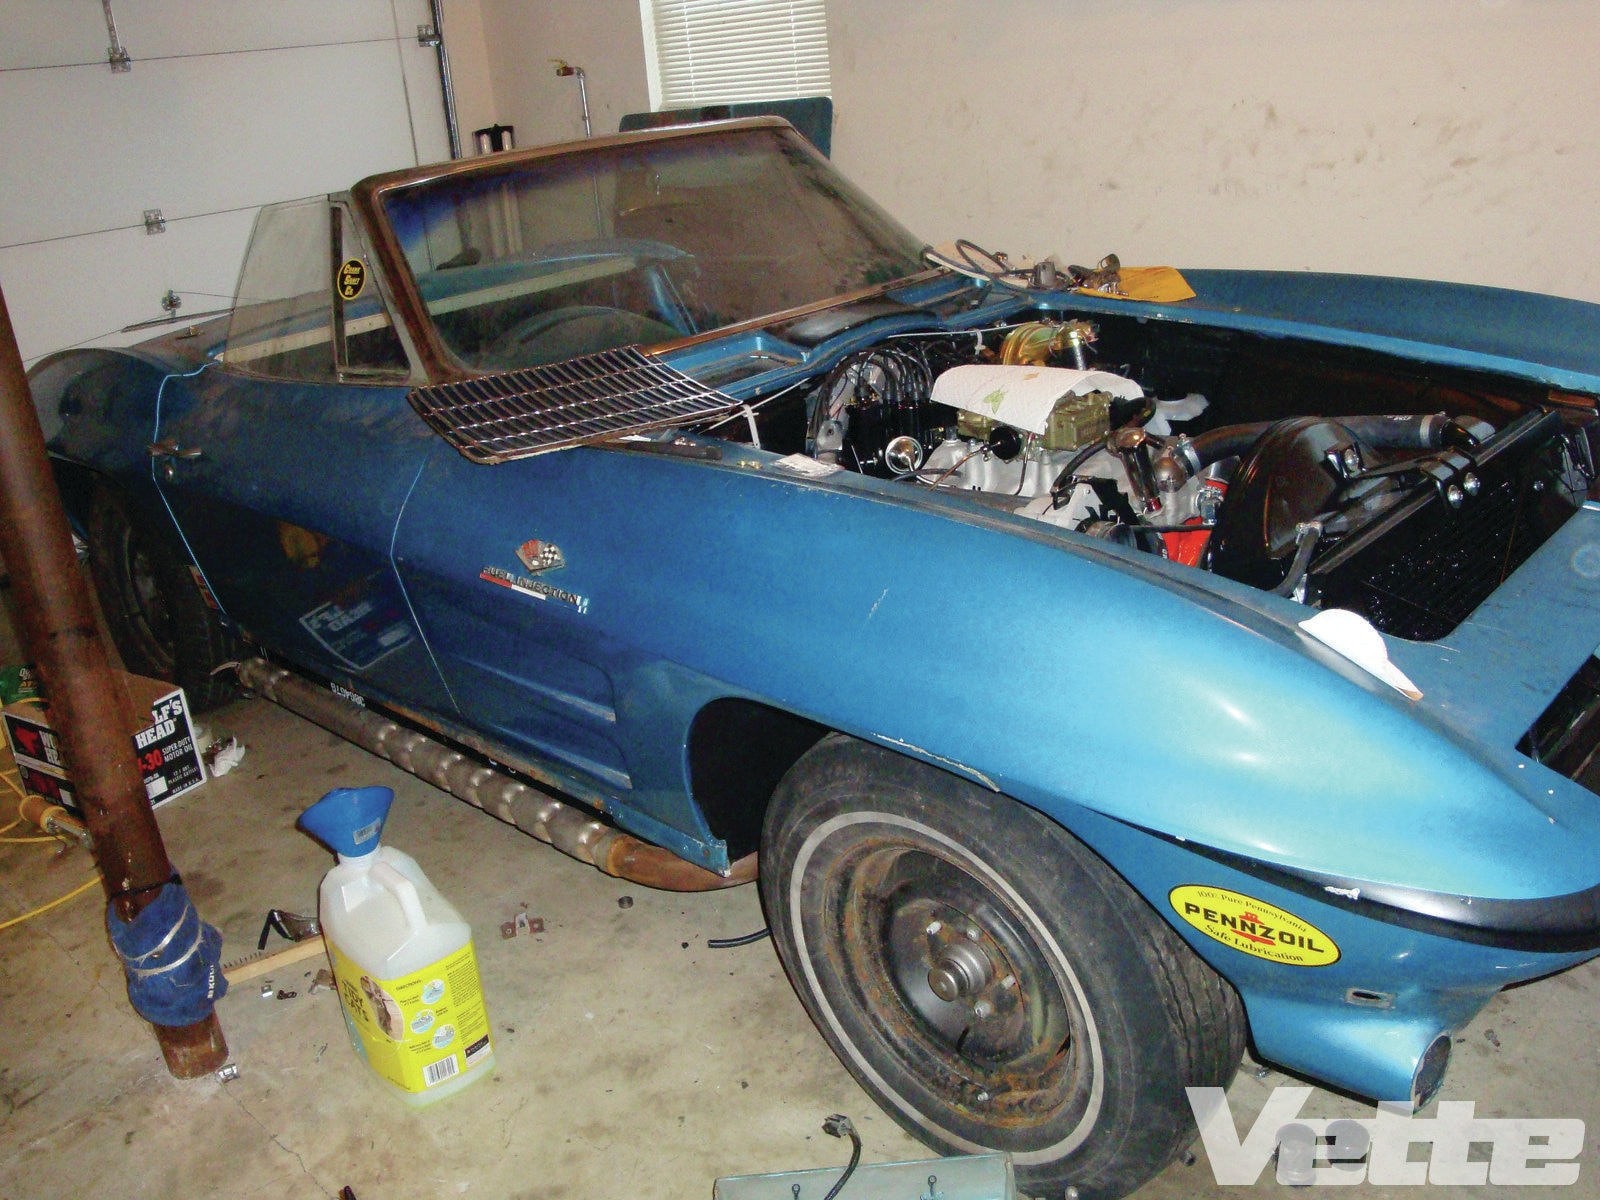 1964 Chevrolet Corvette - Rare Finds